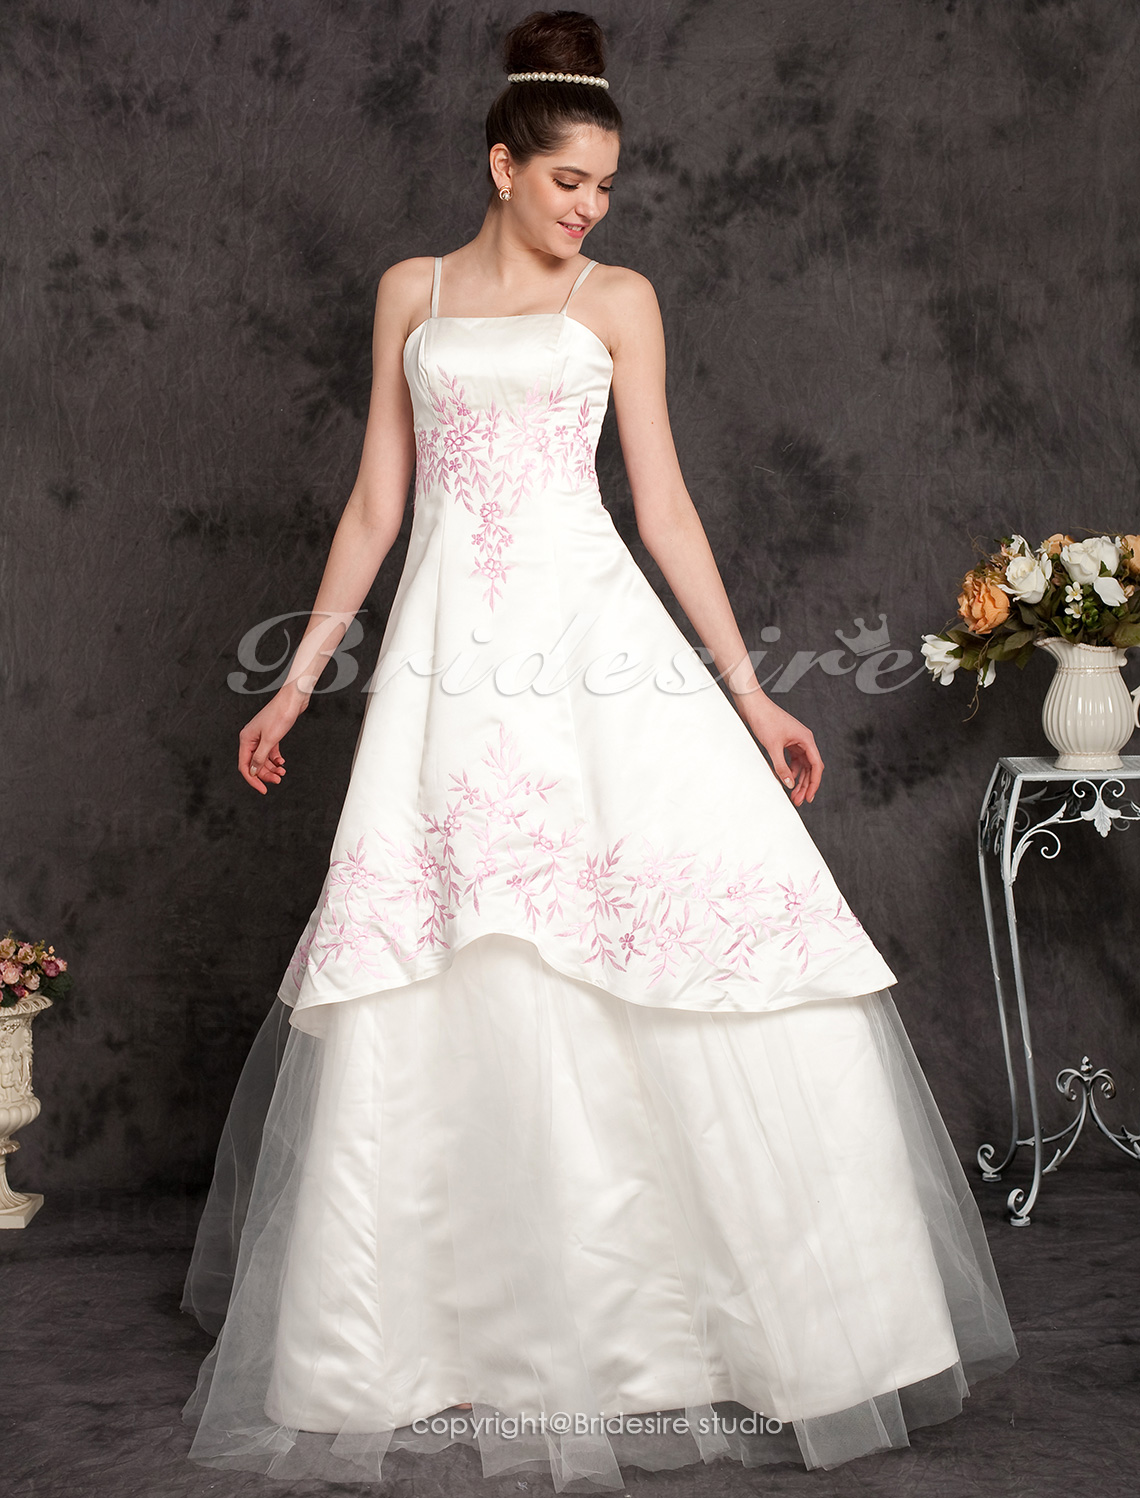 A-line / Princess Satin Sleeveless Floor-length Spaghetti Straps Wedding Dress